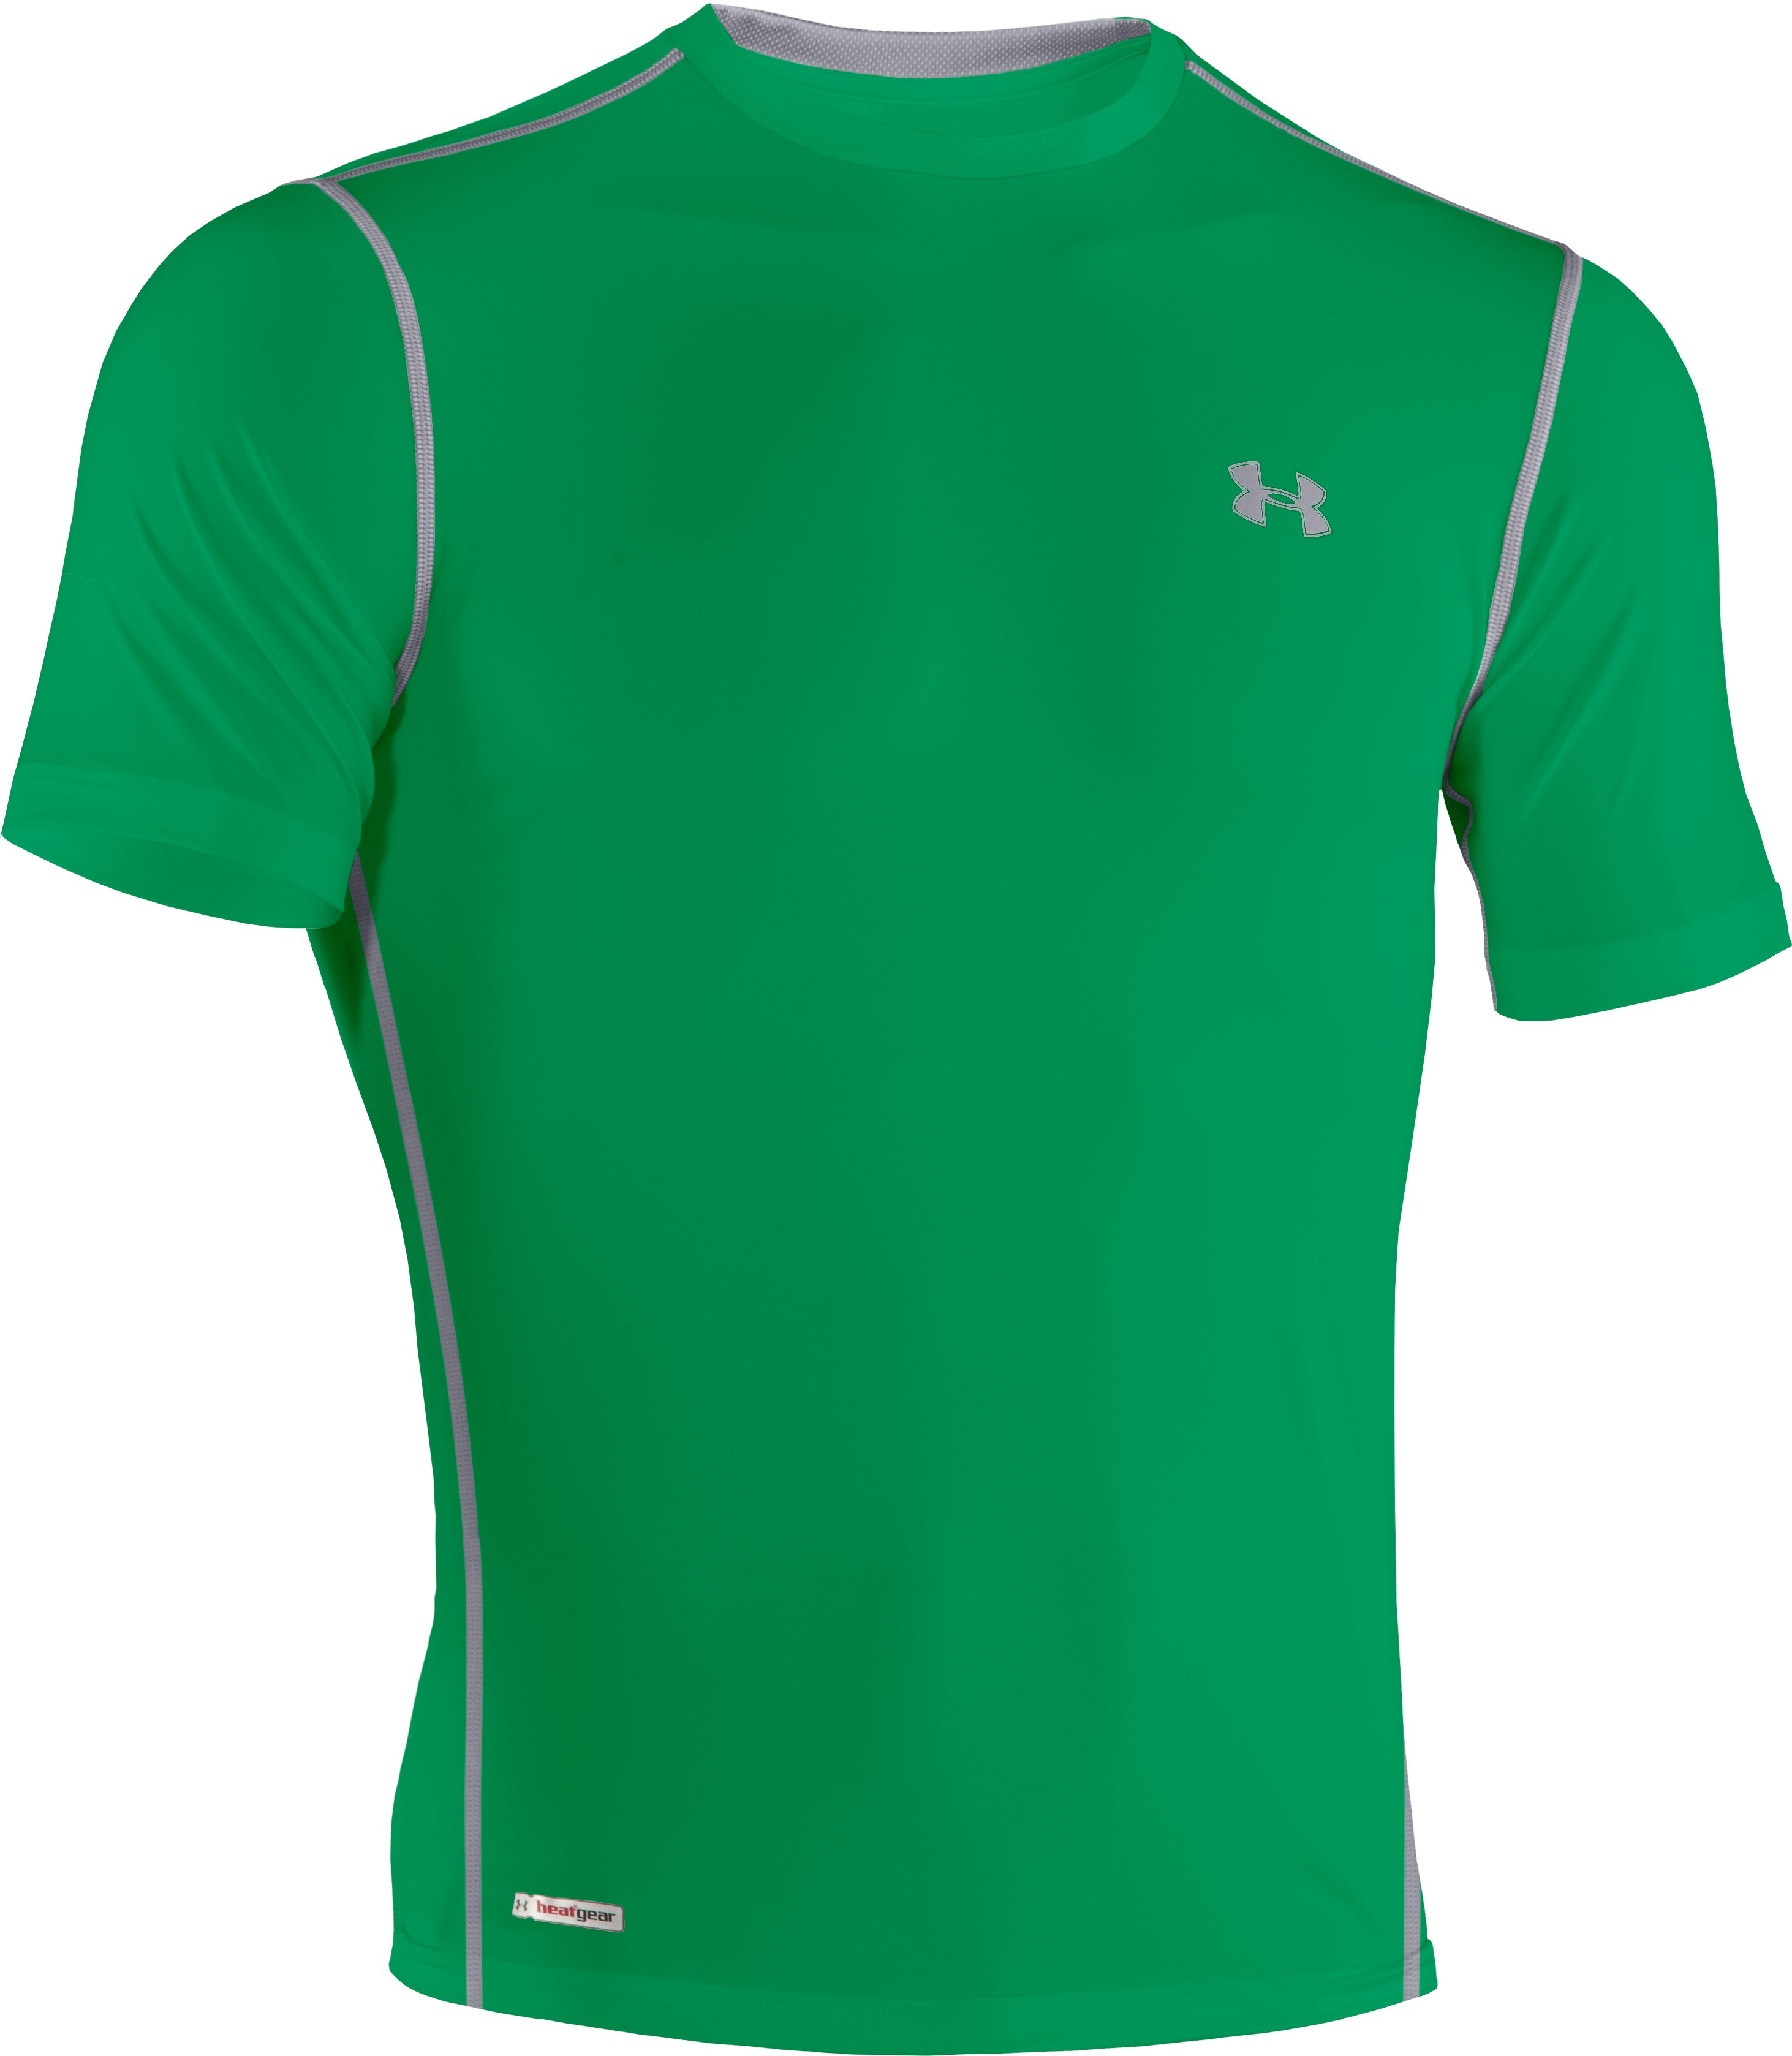 Men's HeatGear® Sonic Fitted Short Sleeve, ASTRO GREEN